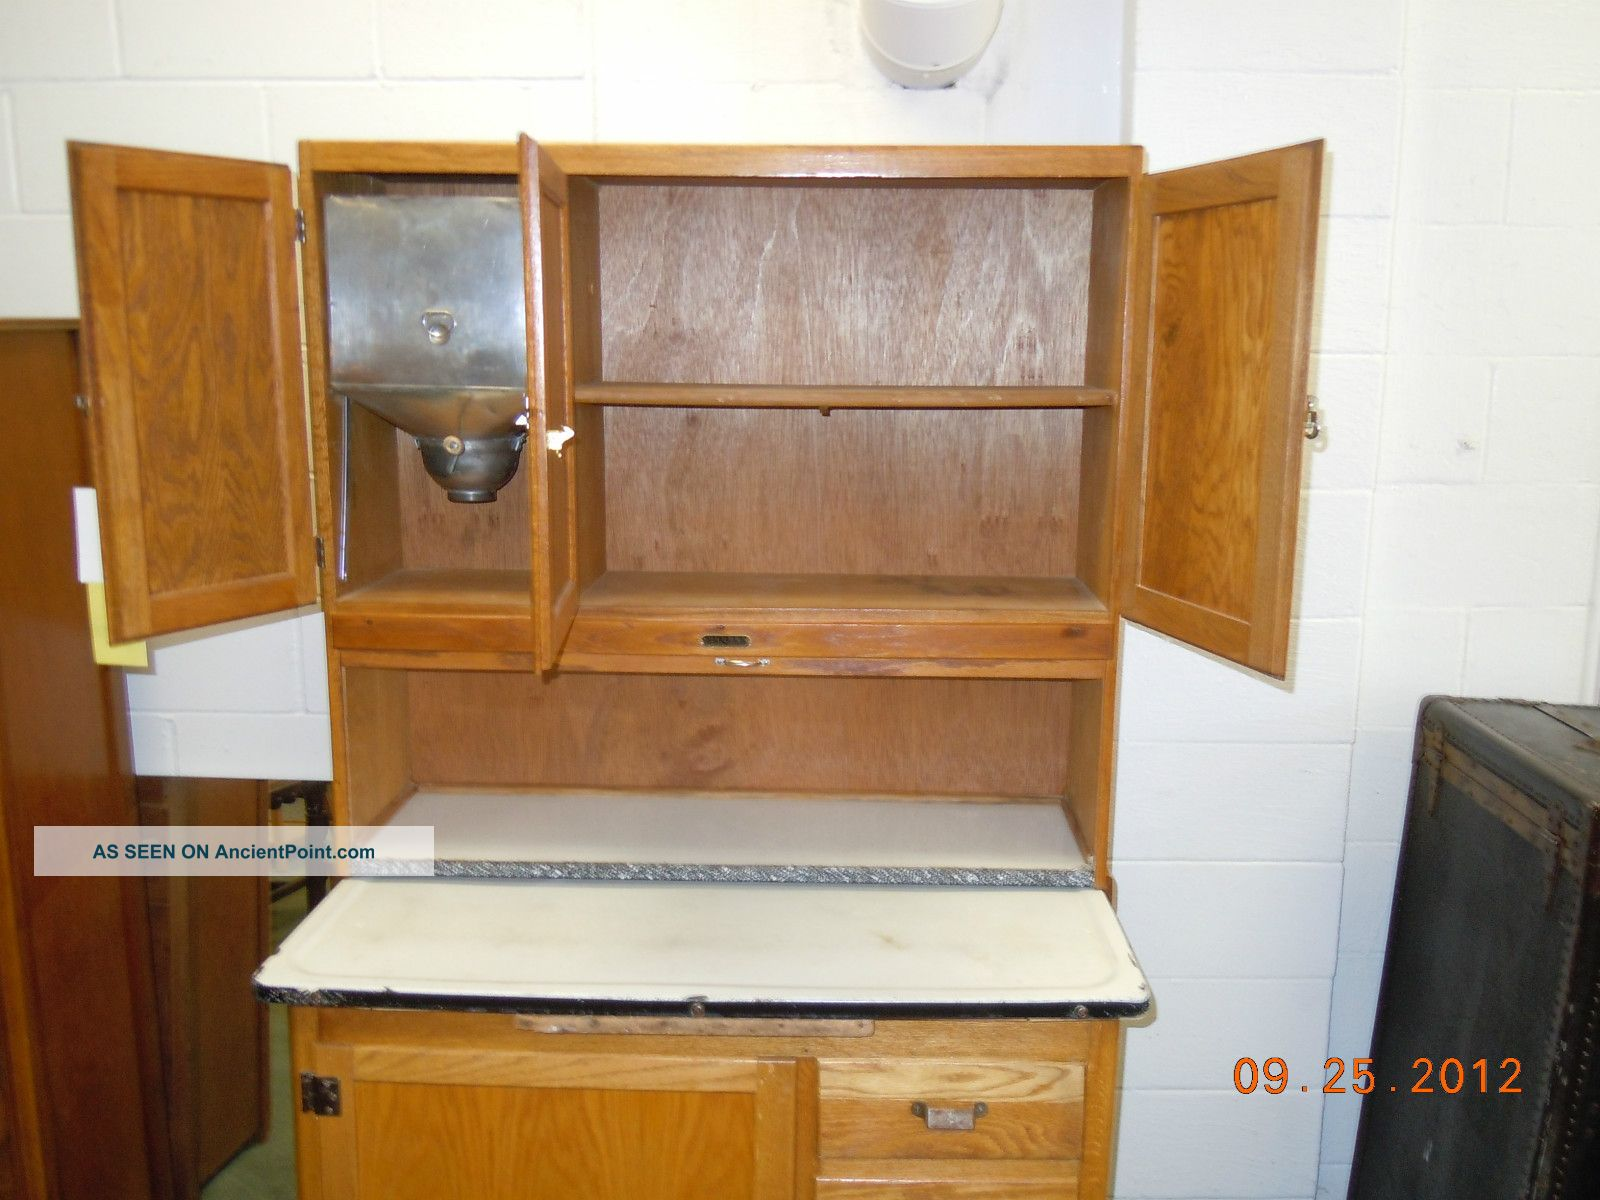 Sellers Kitchen Cabinet Oak With Flour Sifter Racks Bread Drawer More